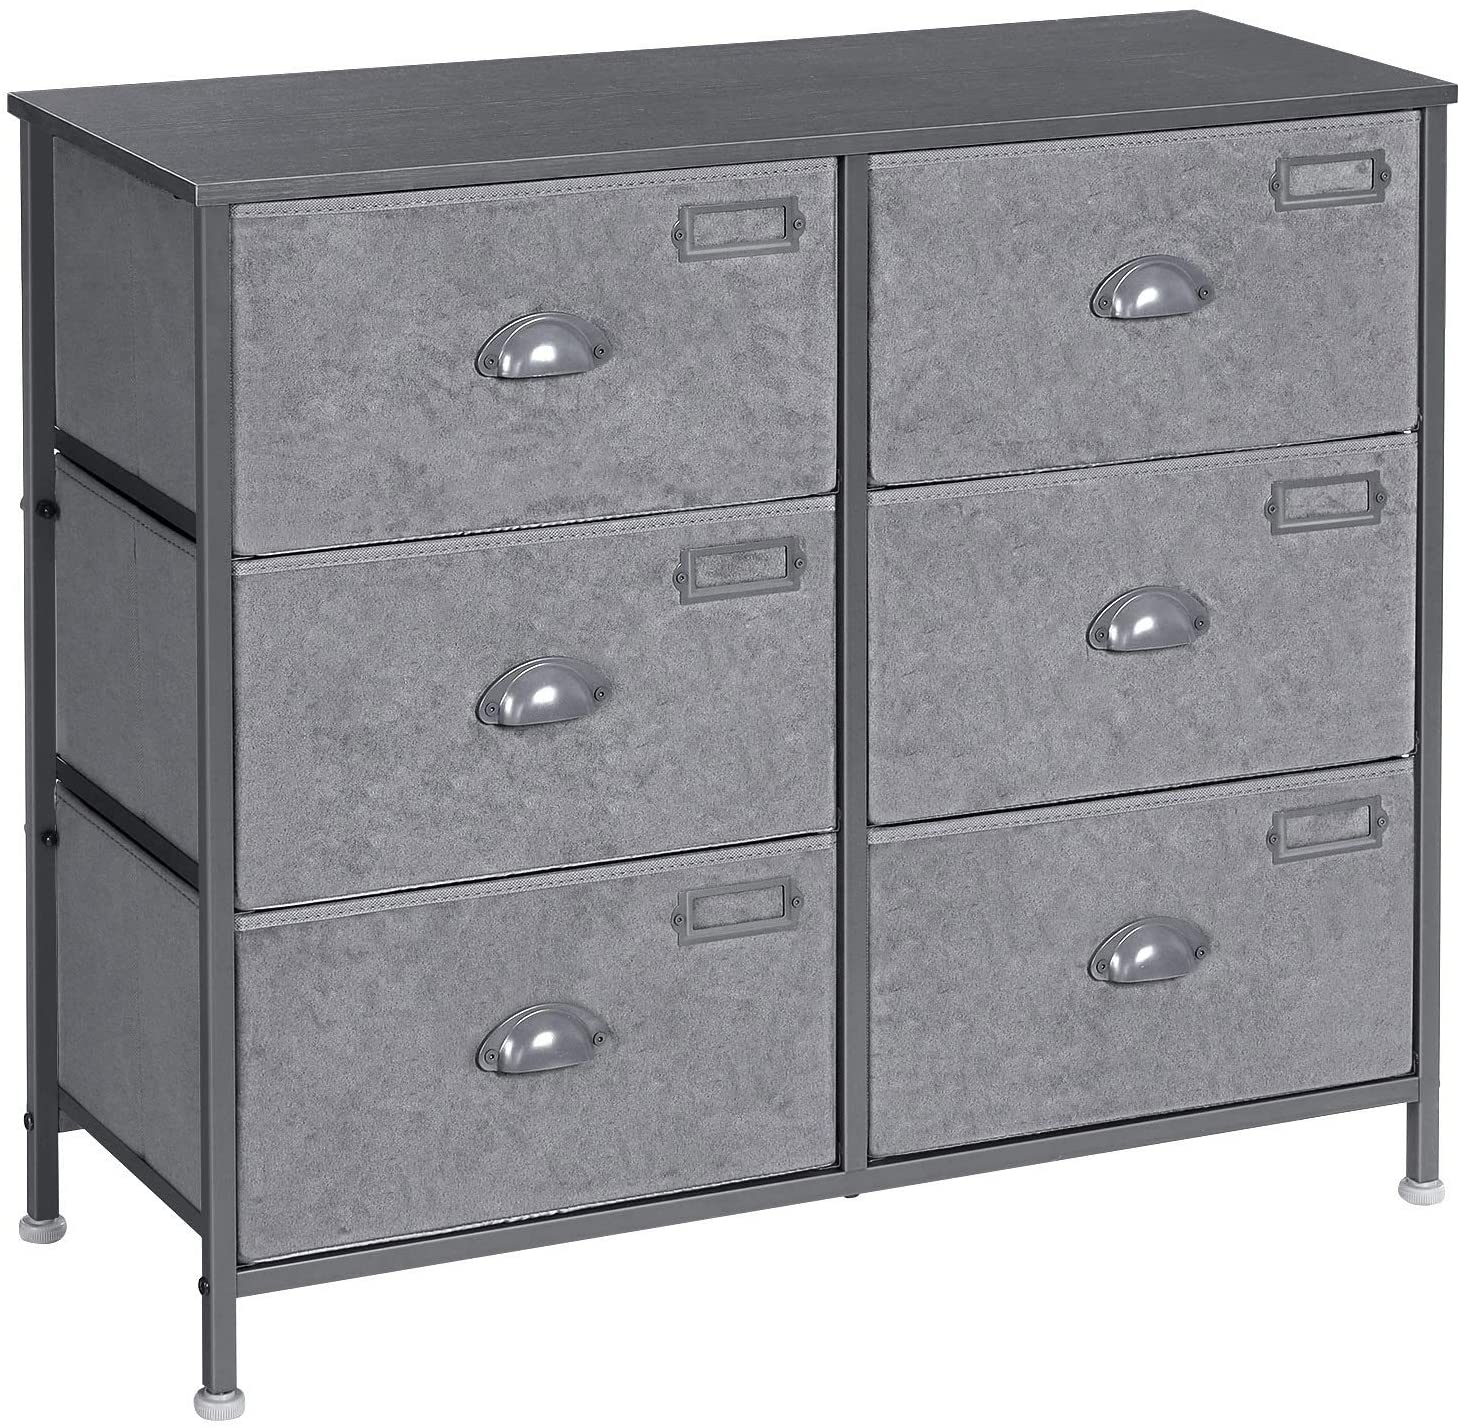 Enjoy fast, free nationwide shipping!  Owned by a husband and wife team of high-school music teachers, HawkinsWoodshop.com is your one stop shop for affordable furniture.  Shop HawkinsWoodshop.com for solid wood & metal modern, traditional, contemporary, industrial, custom, rustic, and farmhouse furniture including our 6 Drawers Gray Fabric Dresser.